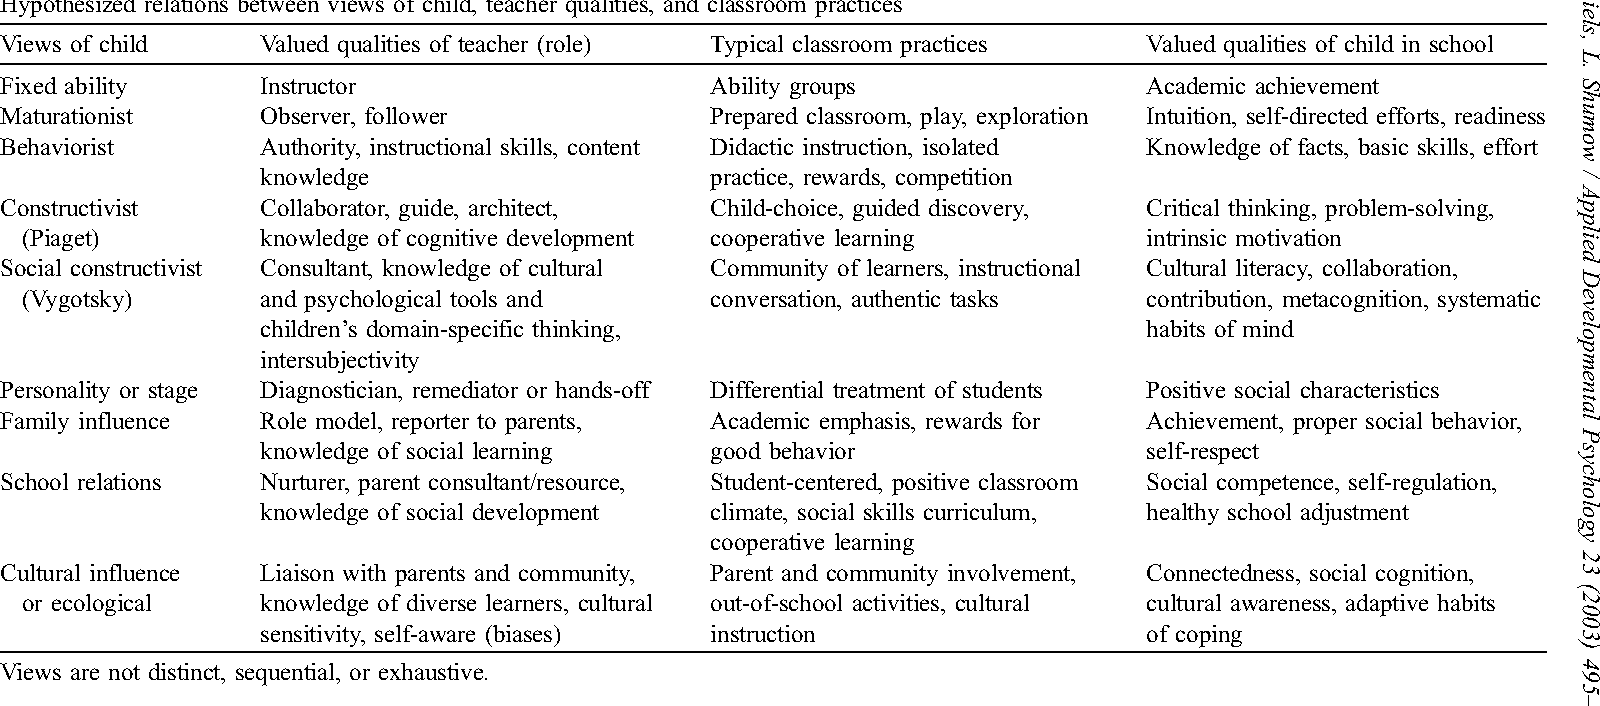 Child development and classroom teaching: a review of the literature